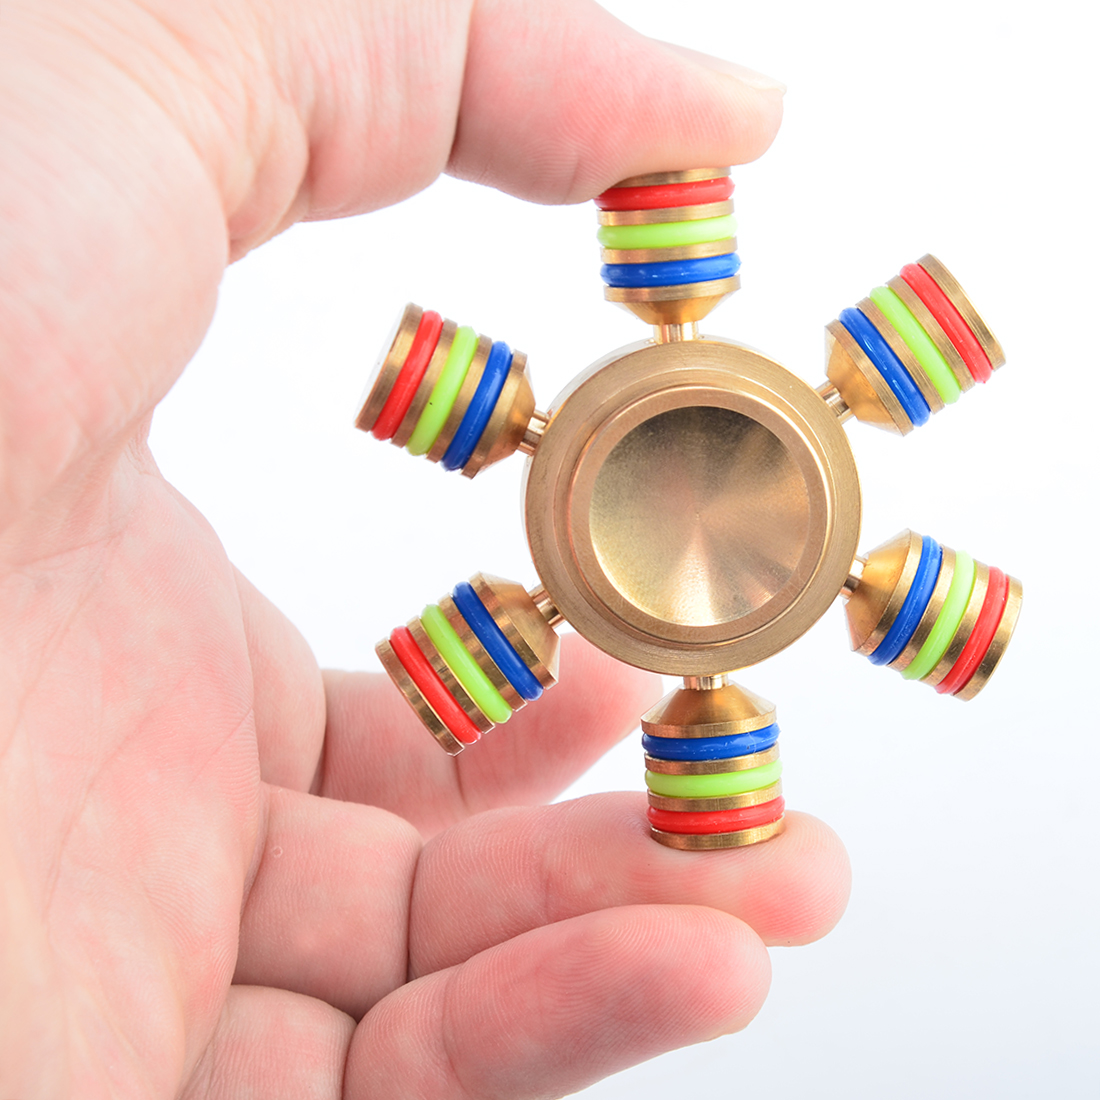 Hexagon Finger Spinner Rainbow with Hybrid Ceramic Bearing EDC Brass Metal Spinner Fidget Hand Toy for Stress Anxiety Relief